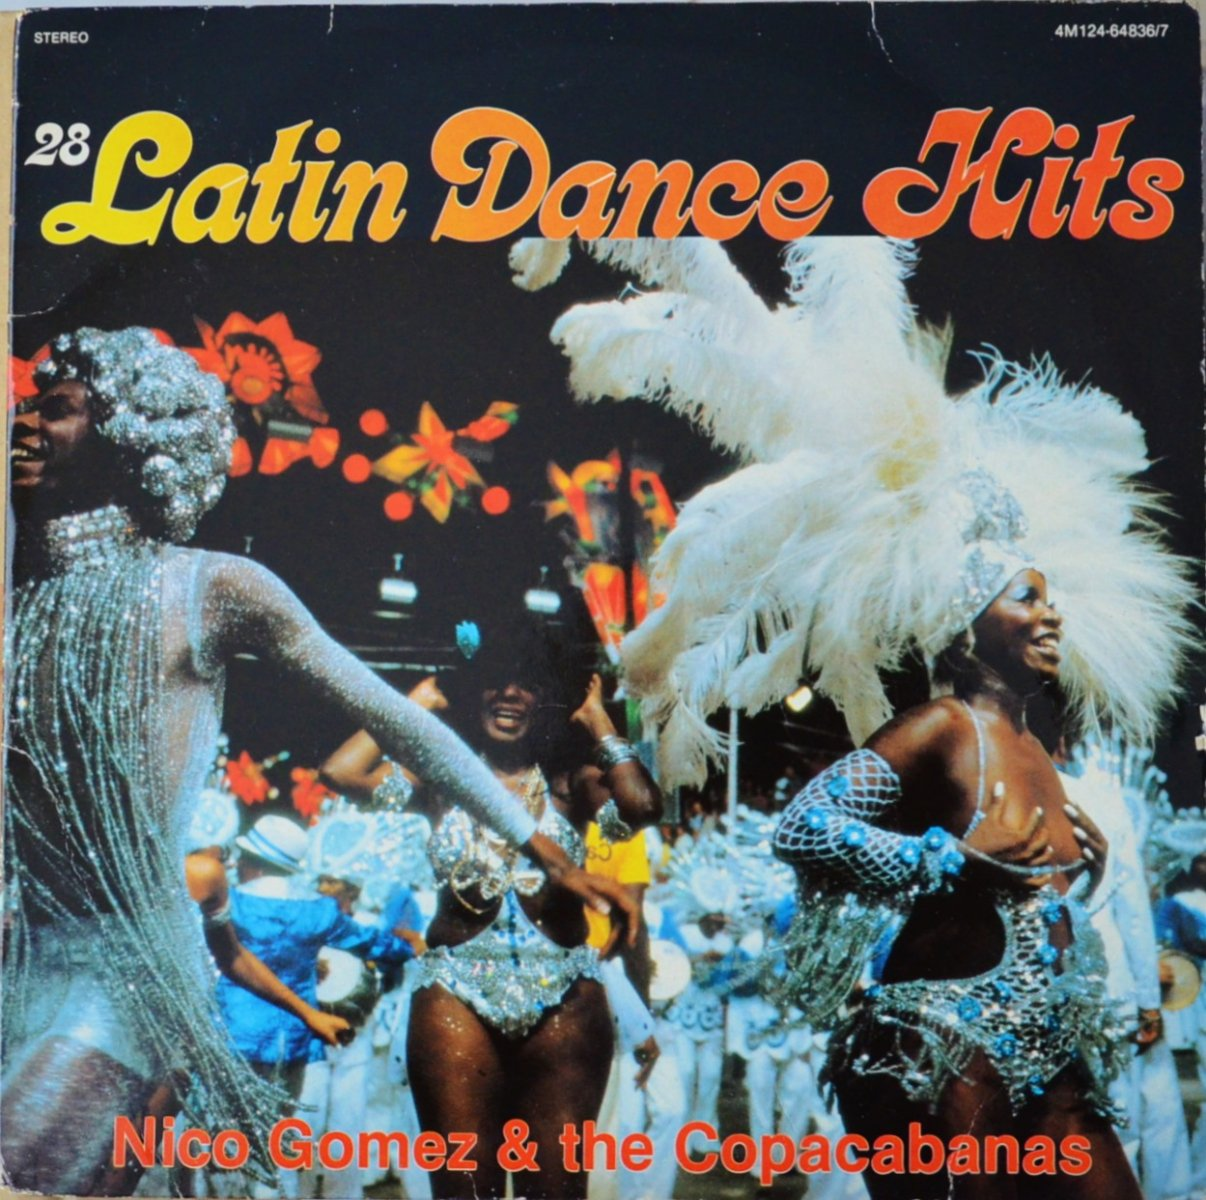 NICO GOMEZ & THE COPACABANAS ‎/ 28 LATIN DANCE HITS (2LP)